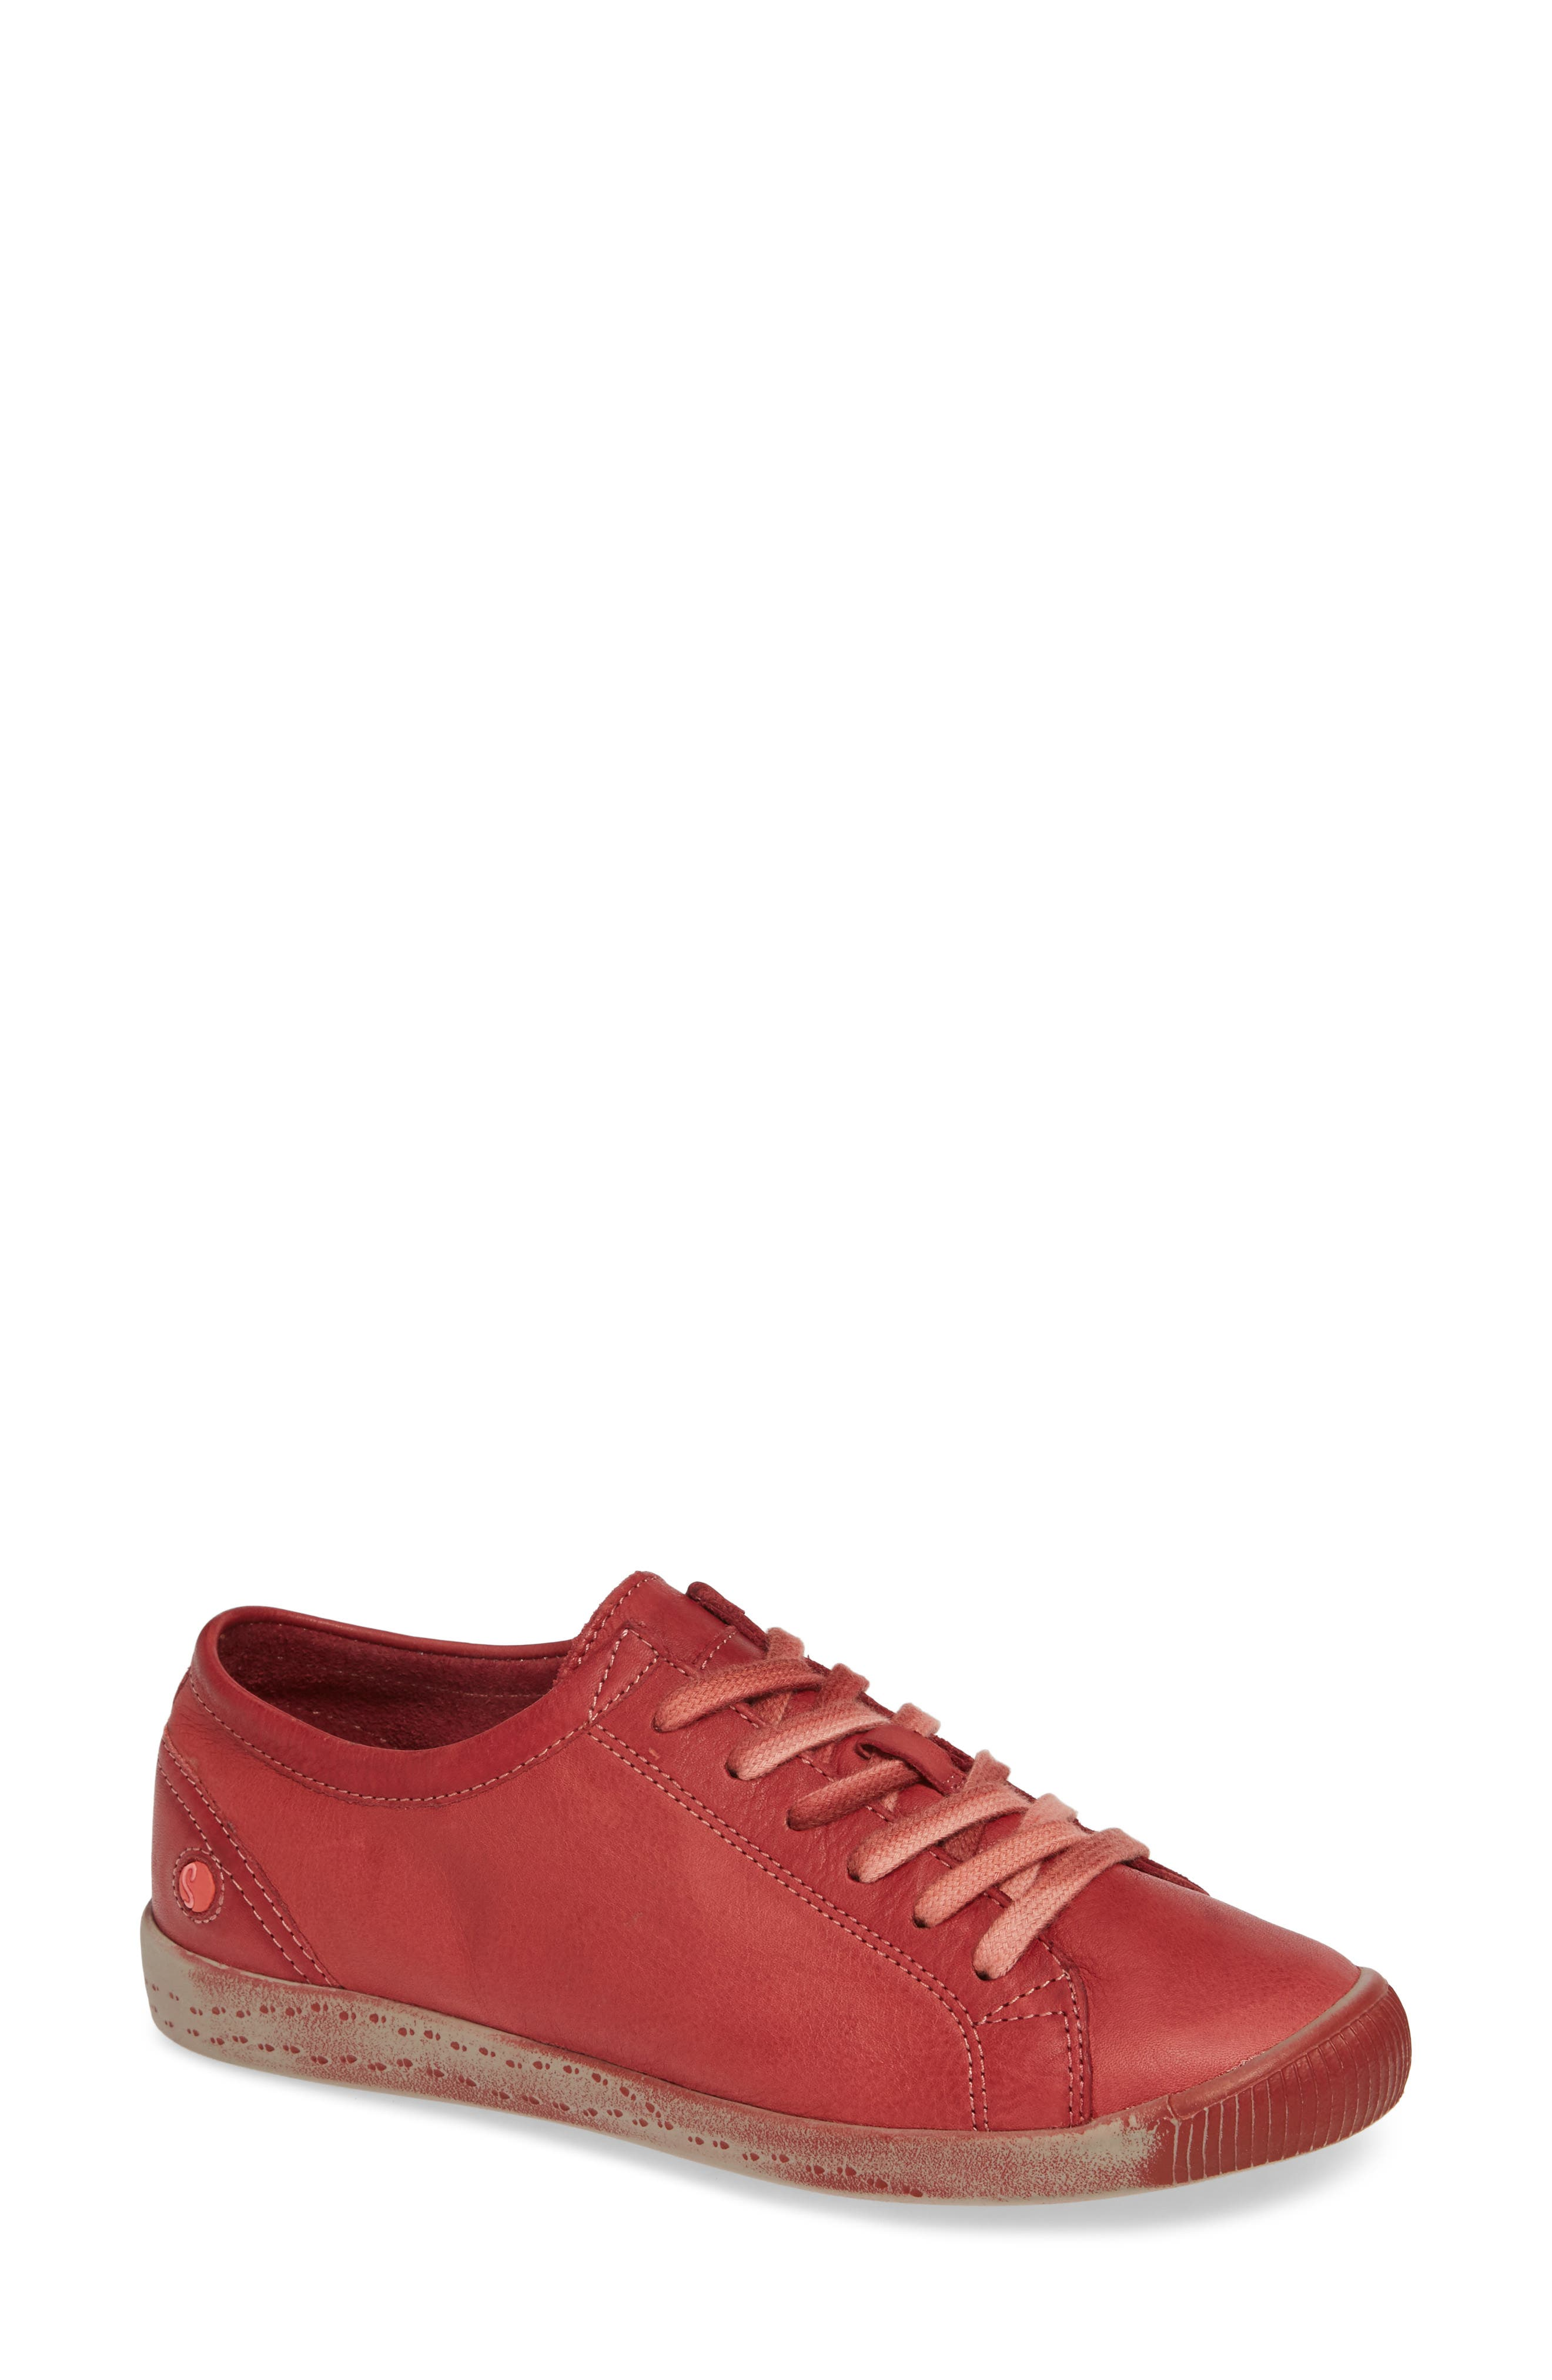 Softinos By Fly London Isla Distressed Sneaker - Red